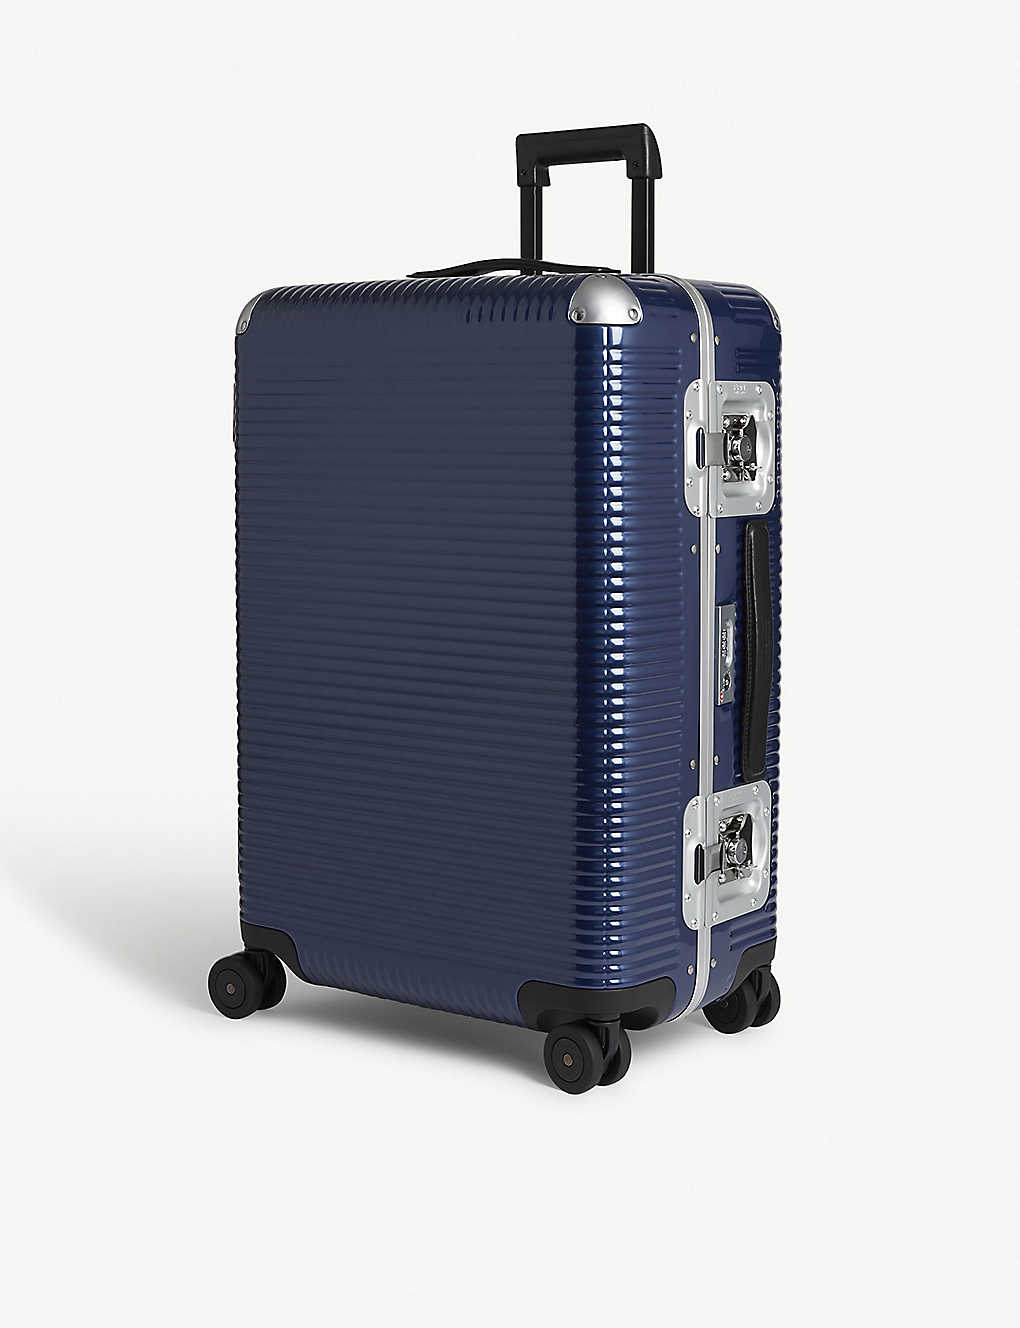 FPM - FABBRICA PELLETTERIE MILANO: Bank Light Spinner suitcase